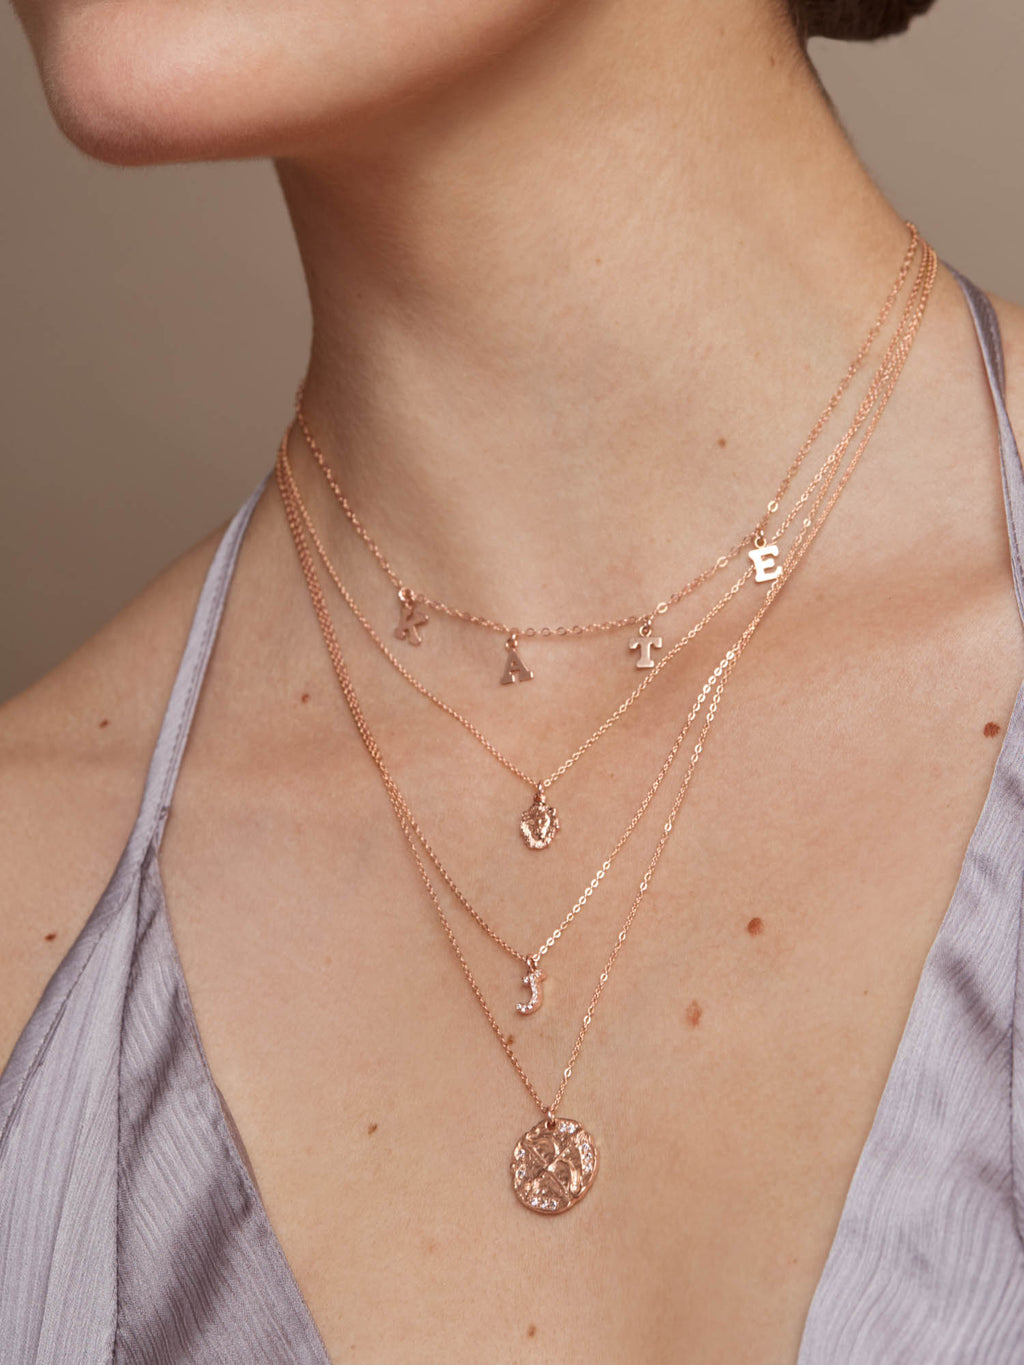 Lion Charm Necklace - Rose Gold